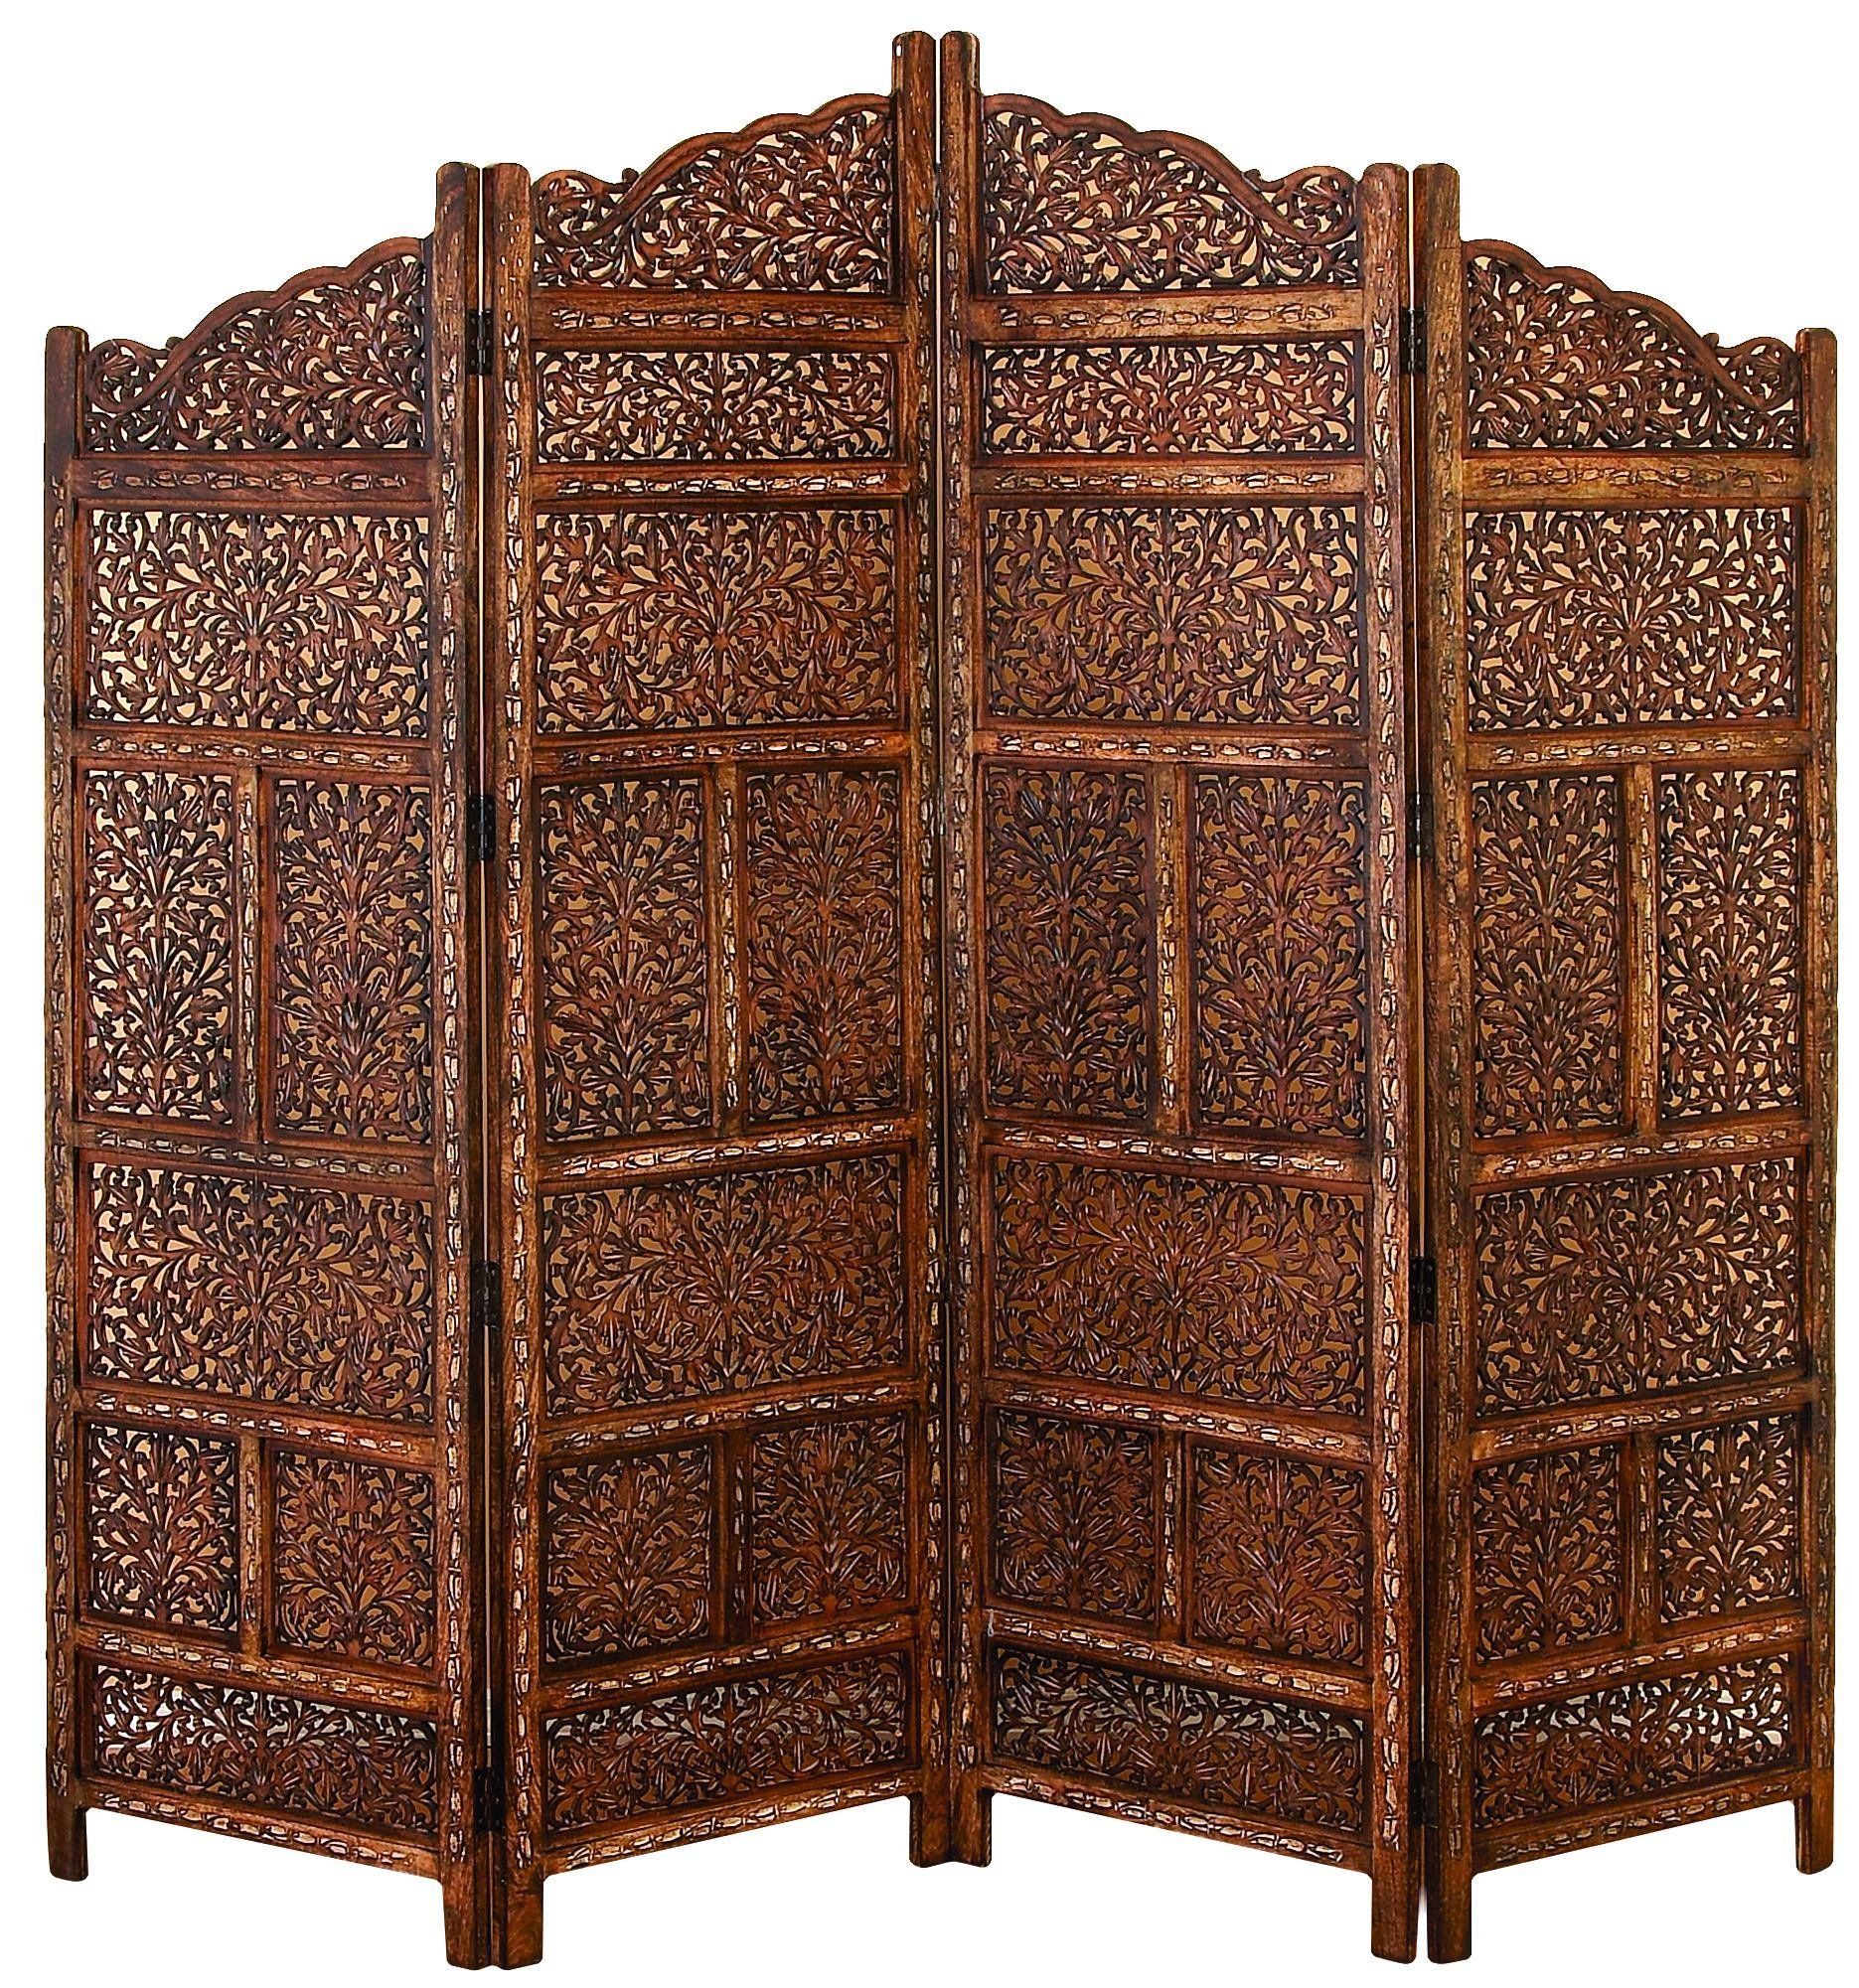 Deco 79 Traditional Wood Multi-Panel Room Divider, 72'' H x 80'' L, Textured Brown Finish by Deco 79